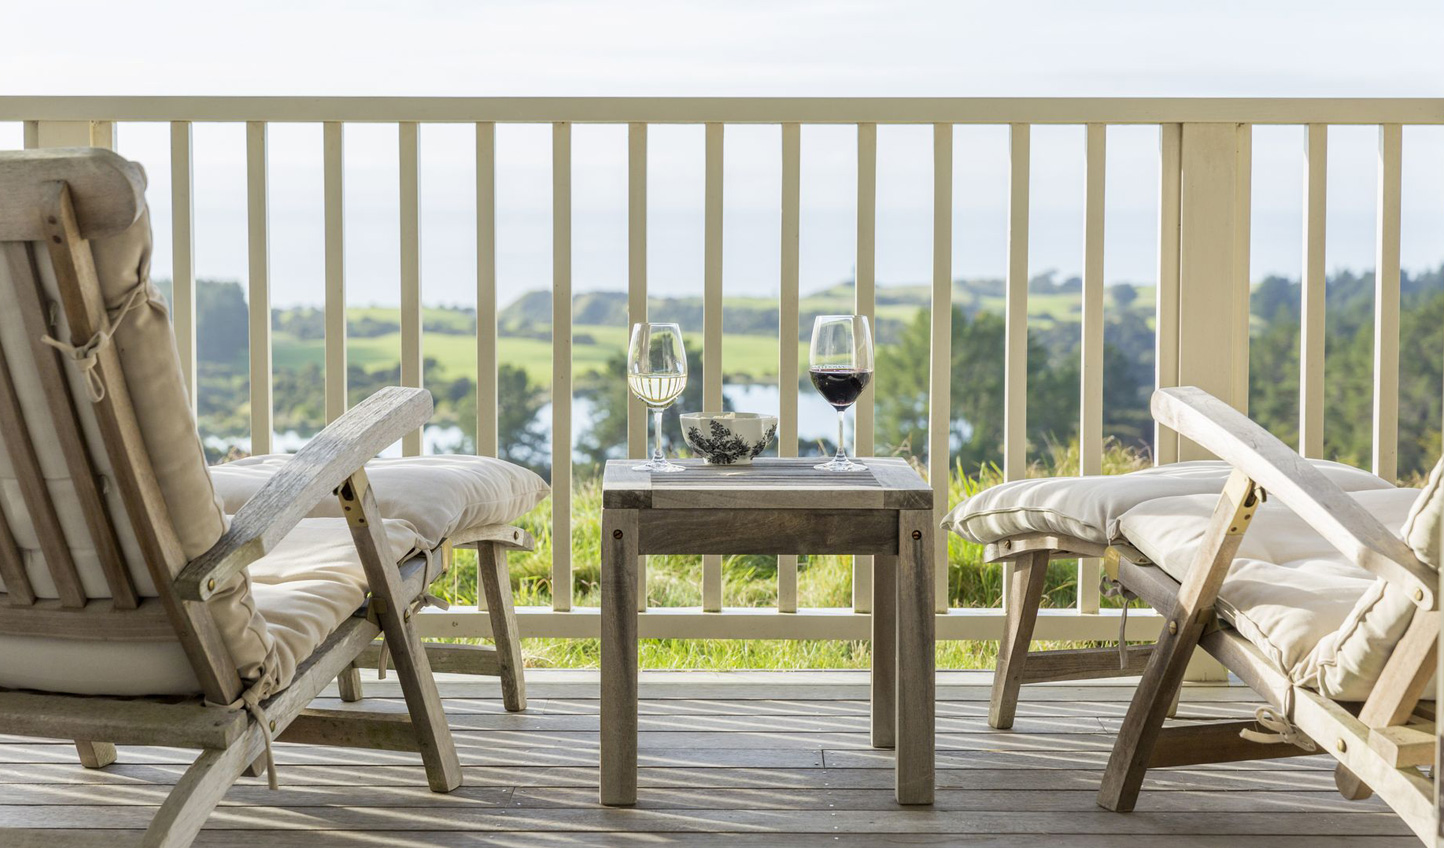 Head out onto your balcony for an evening glass of wine